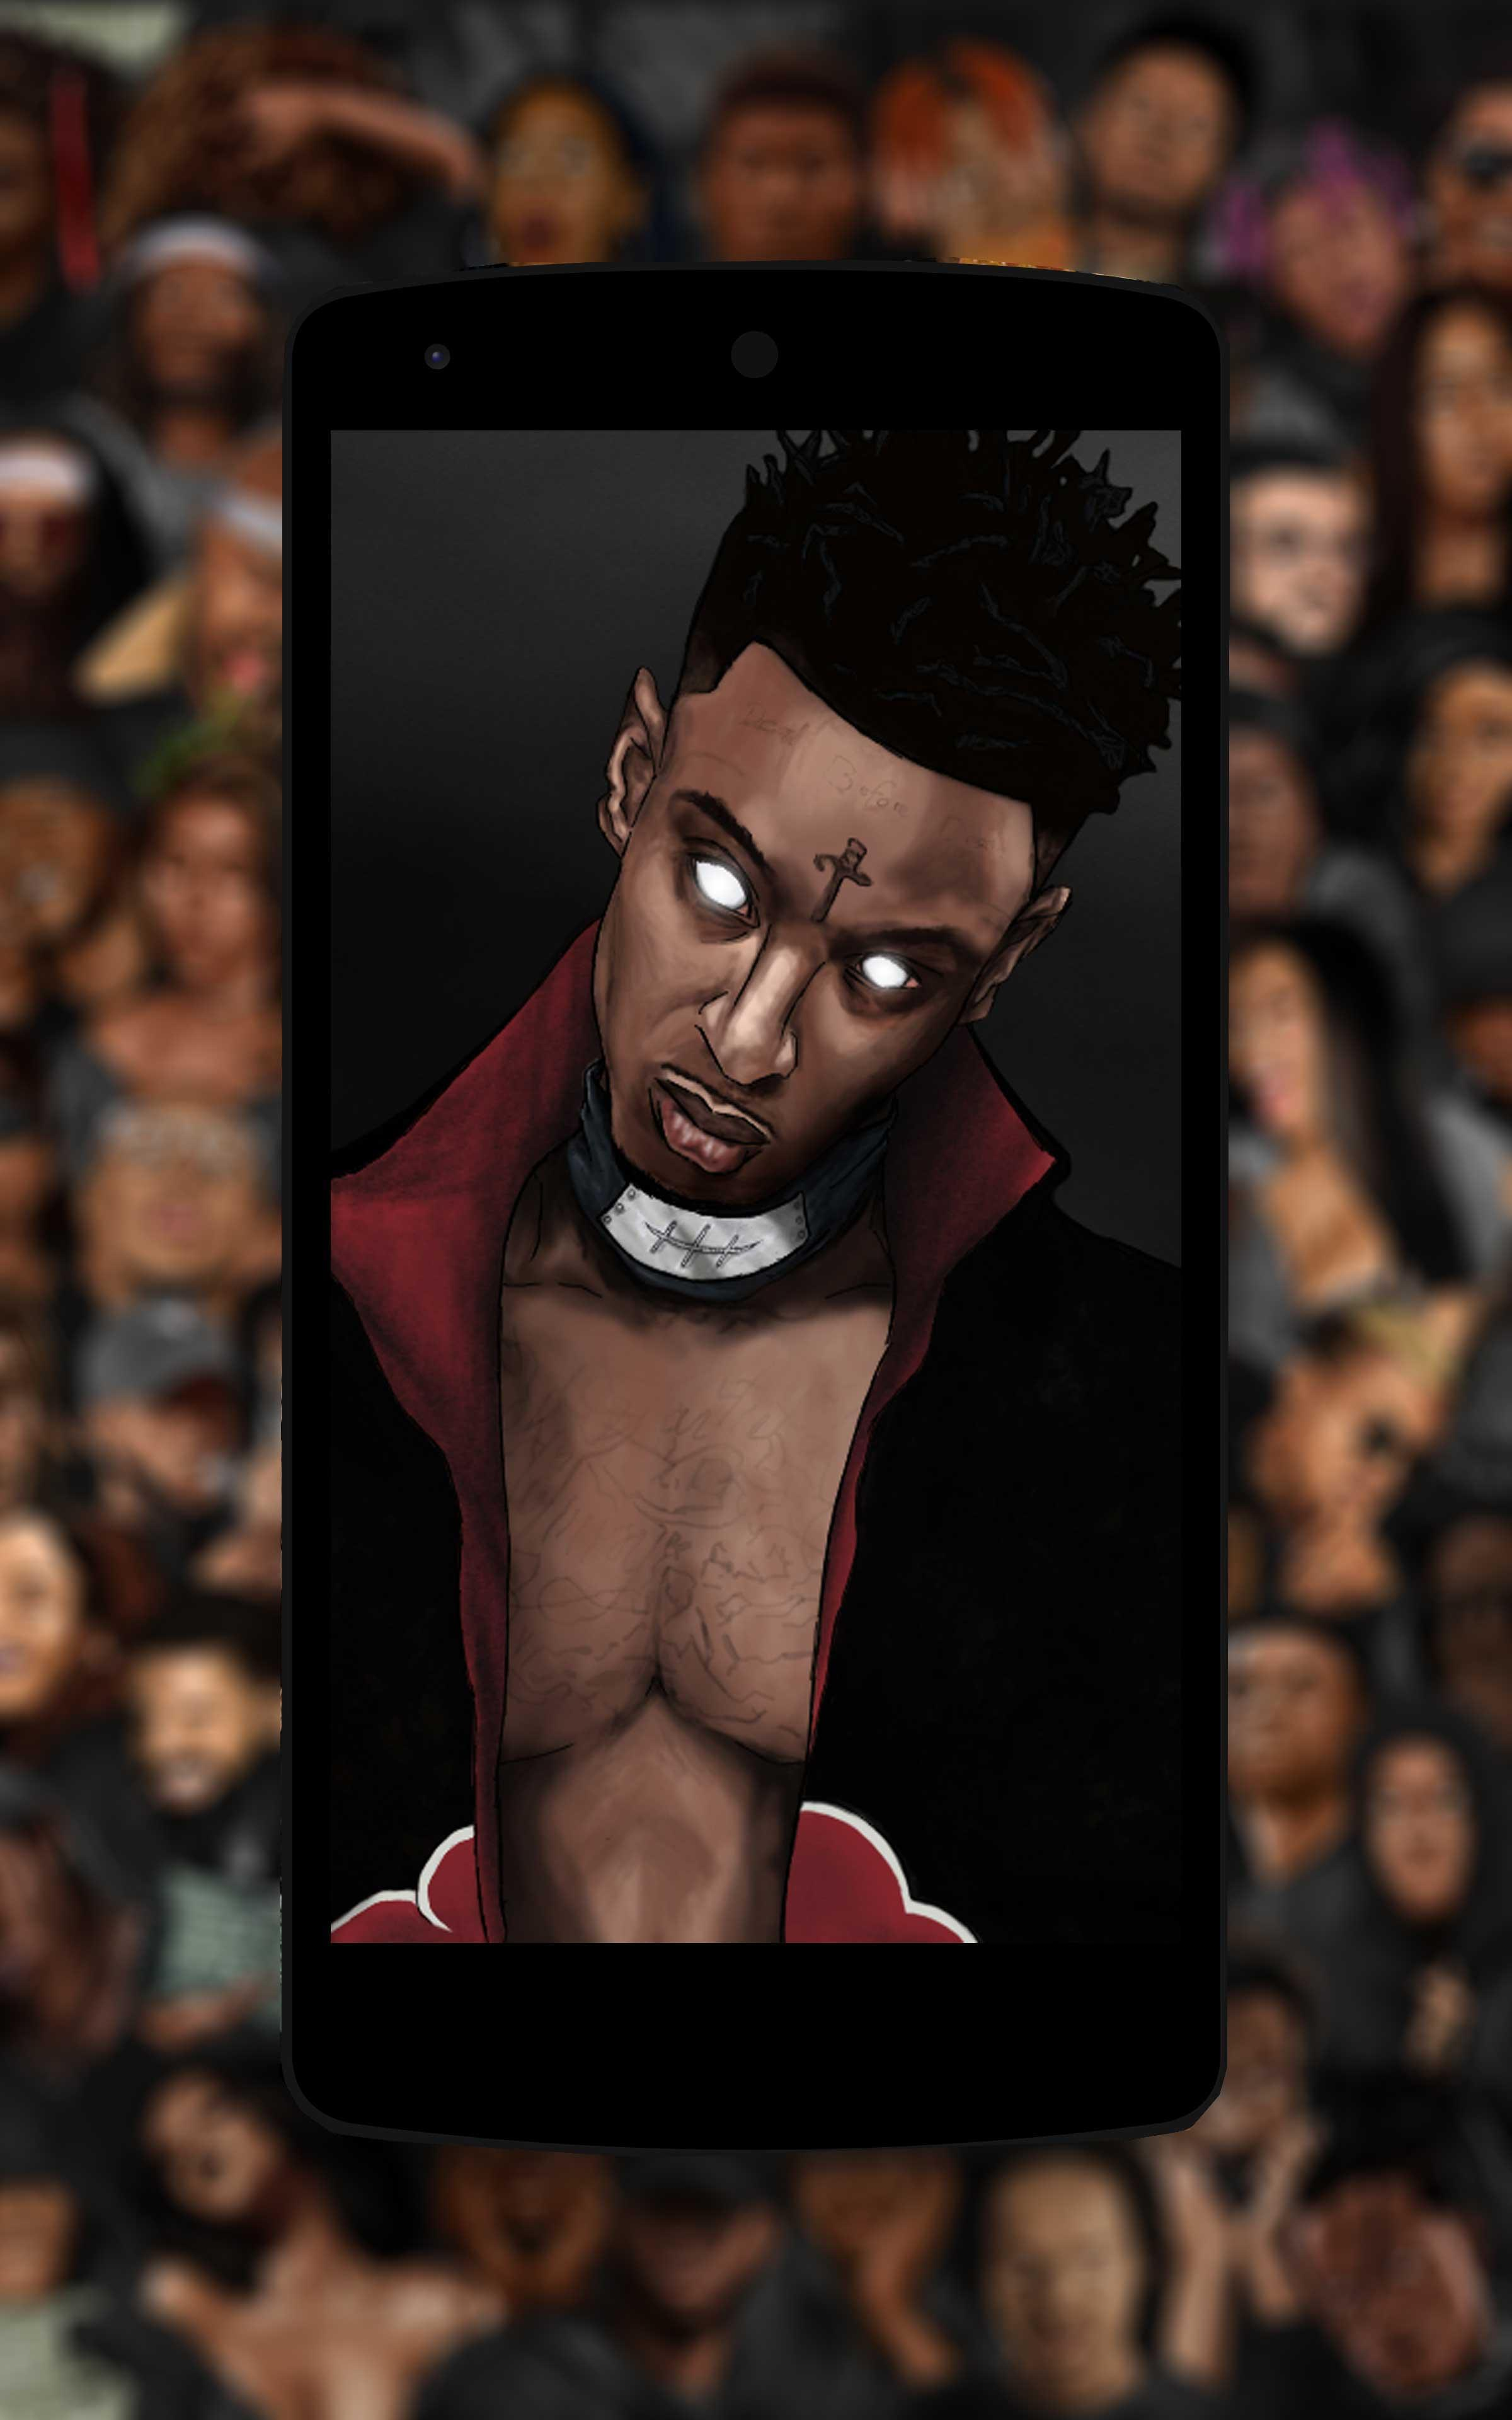 21 savage rapper wallpaper hd for android apk download 21 savage rapper wallpaper hd for